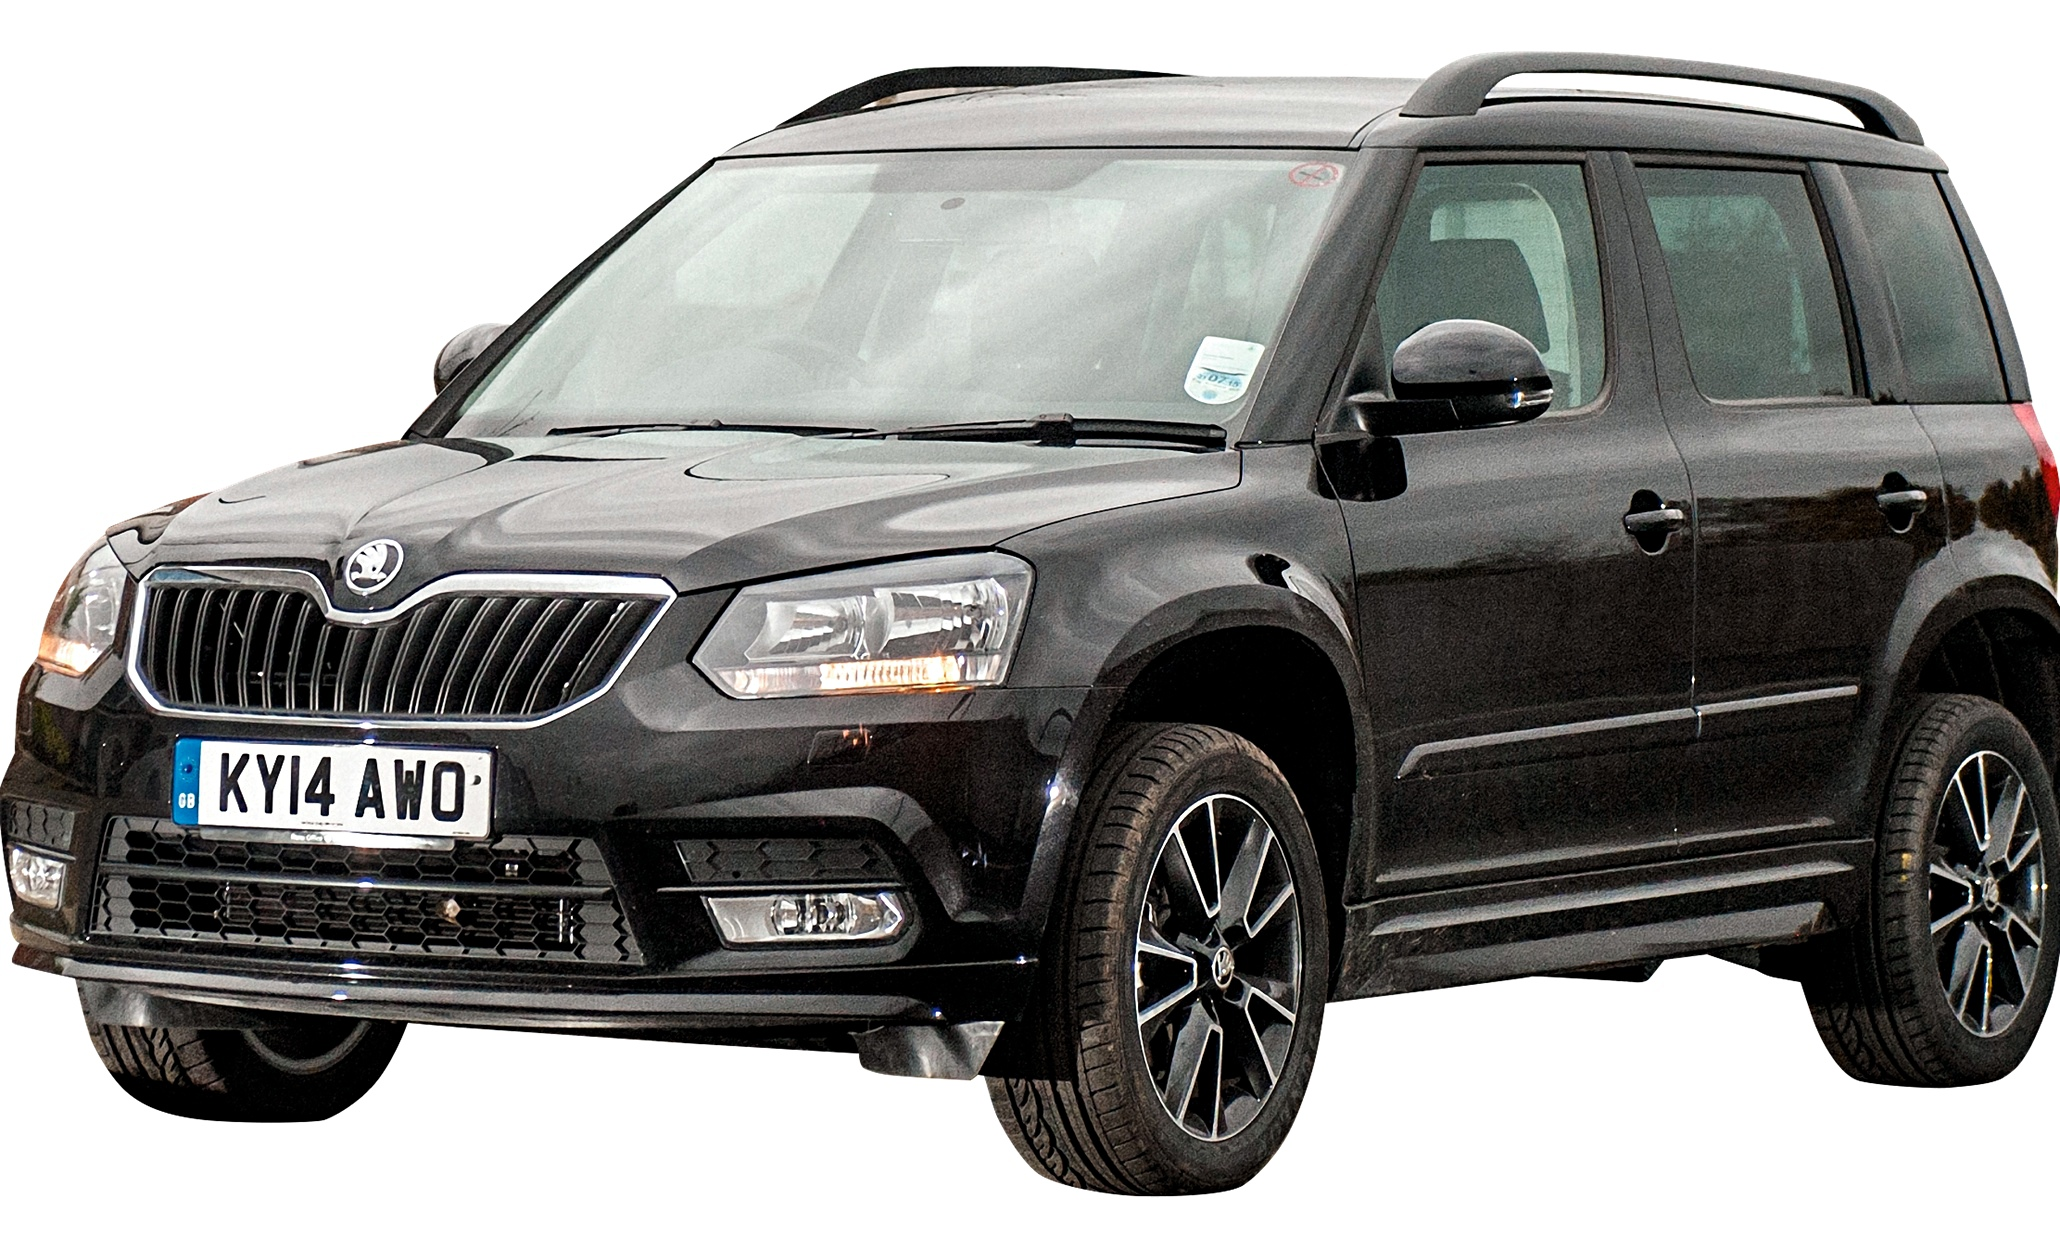 on the road skoda yeti black edition car review technology the guardian. Black Bedroom Furniture Sets. Home Design Ideas